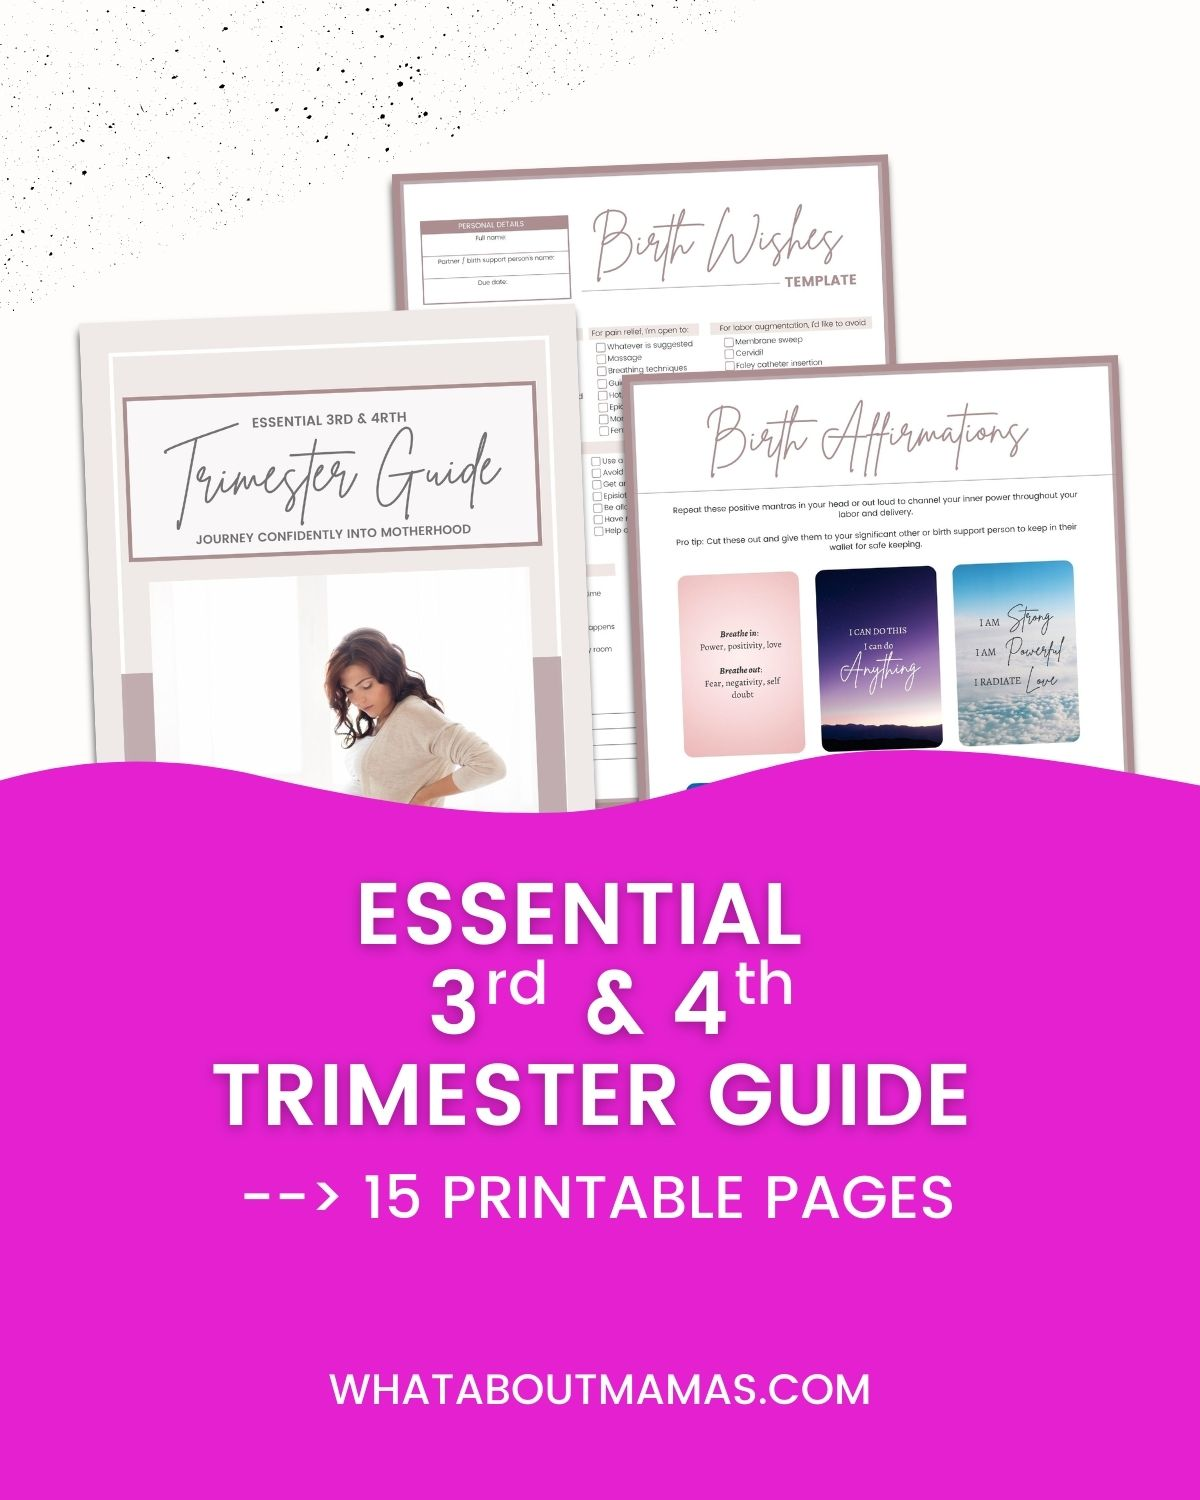 Get the guide to your inbox!